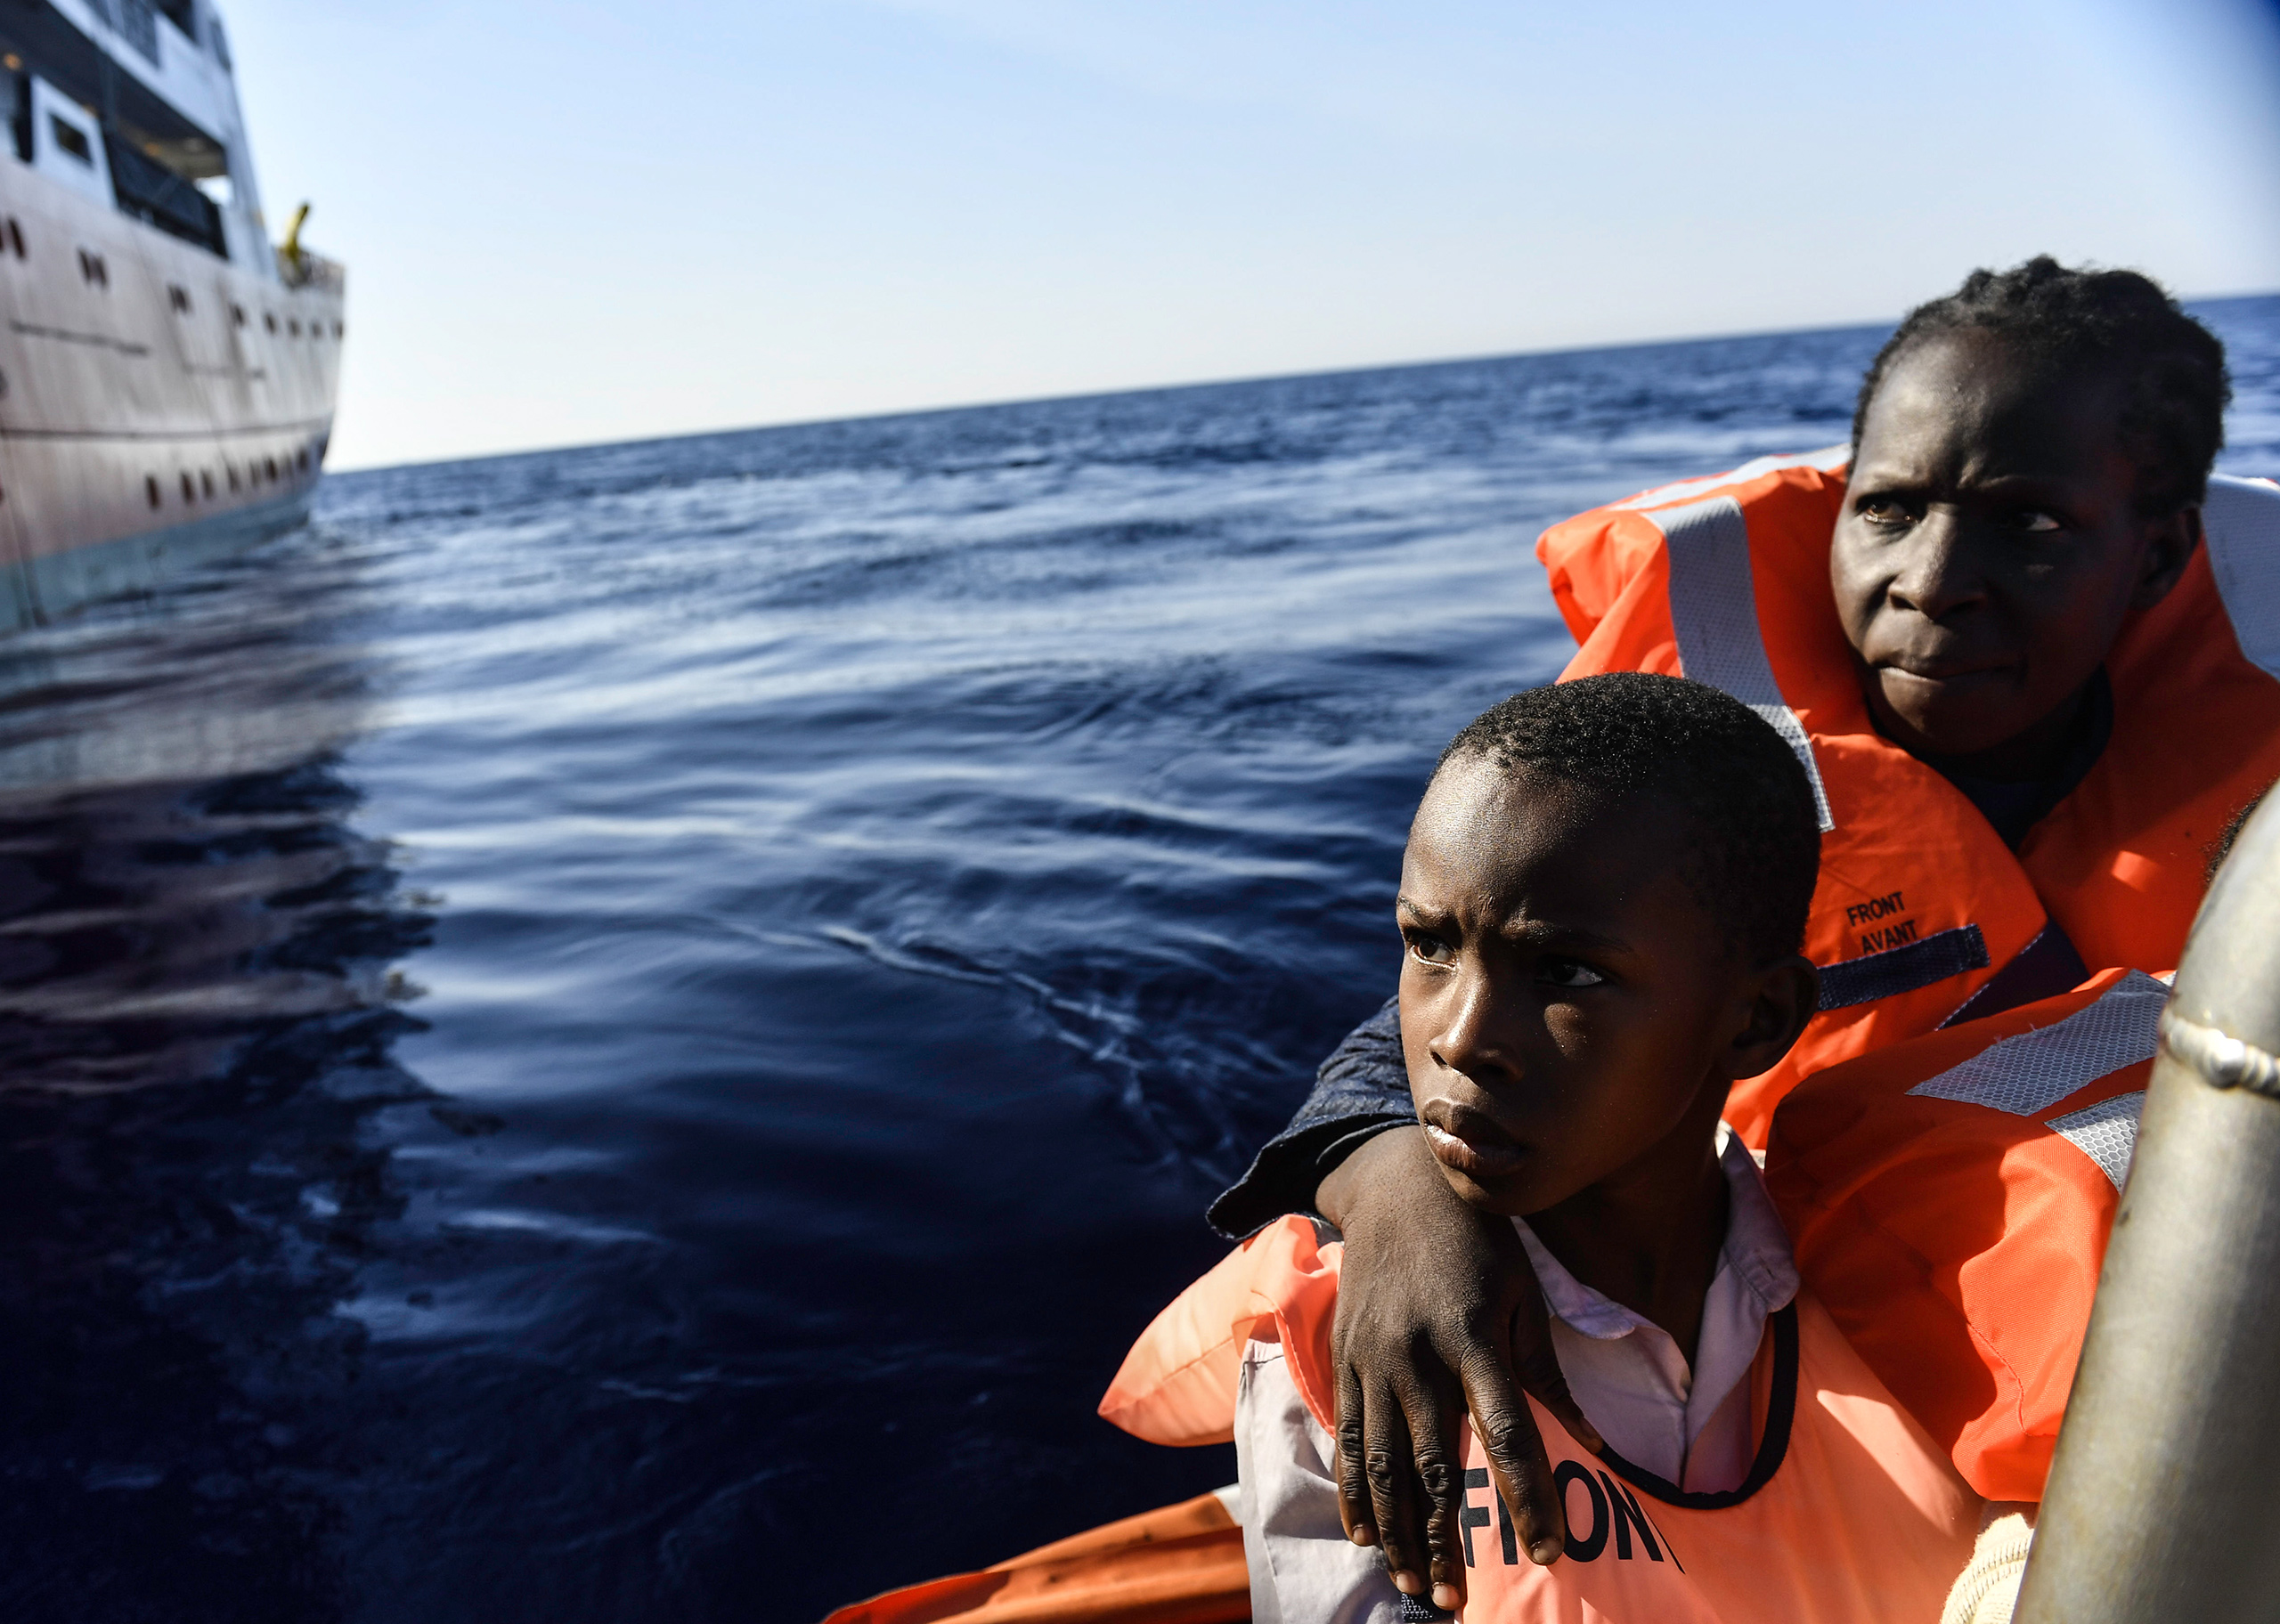 Victoria, a 42-year-old Nigerian migrant and her son Victor are transferred to the MV Aquarius, minutes after they were rescued with more than 130 others on a rubber boat in the Mediterranean, Aug. 20, 2016.